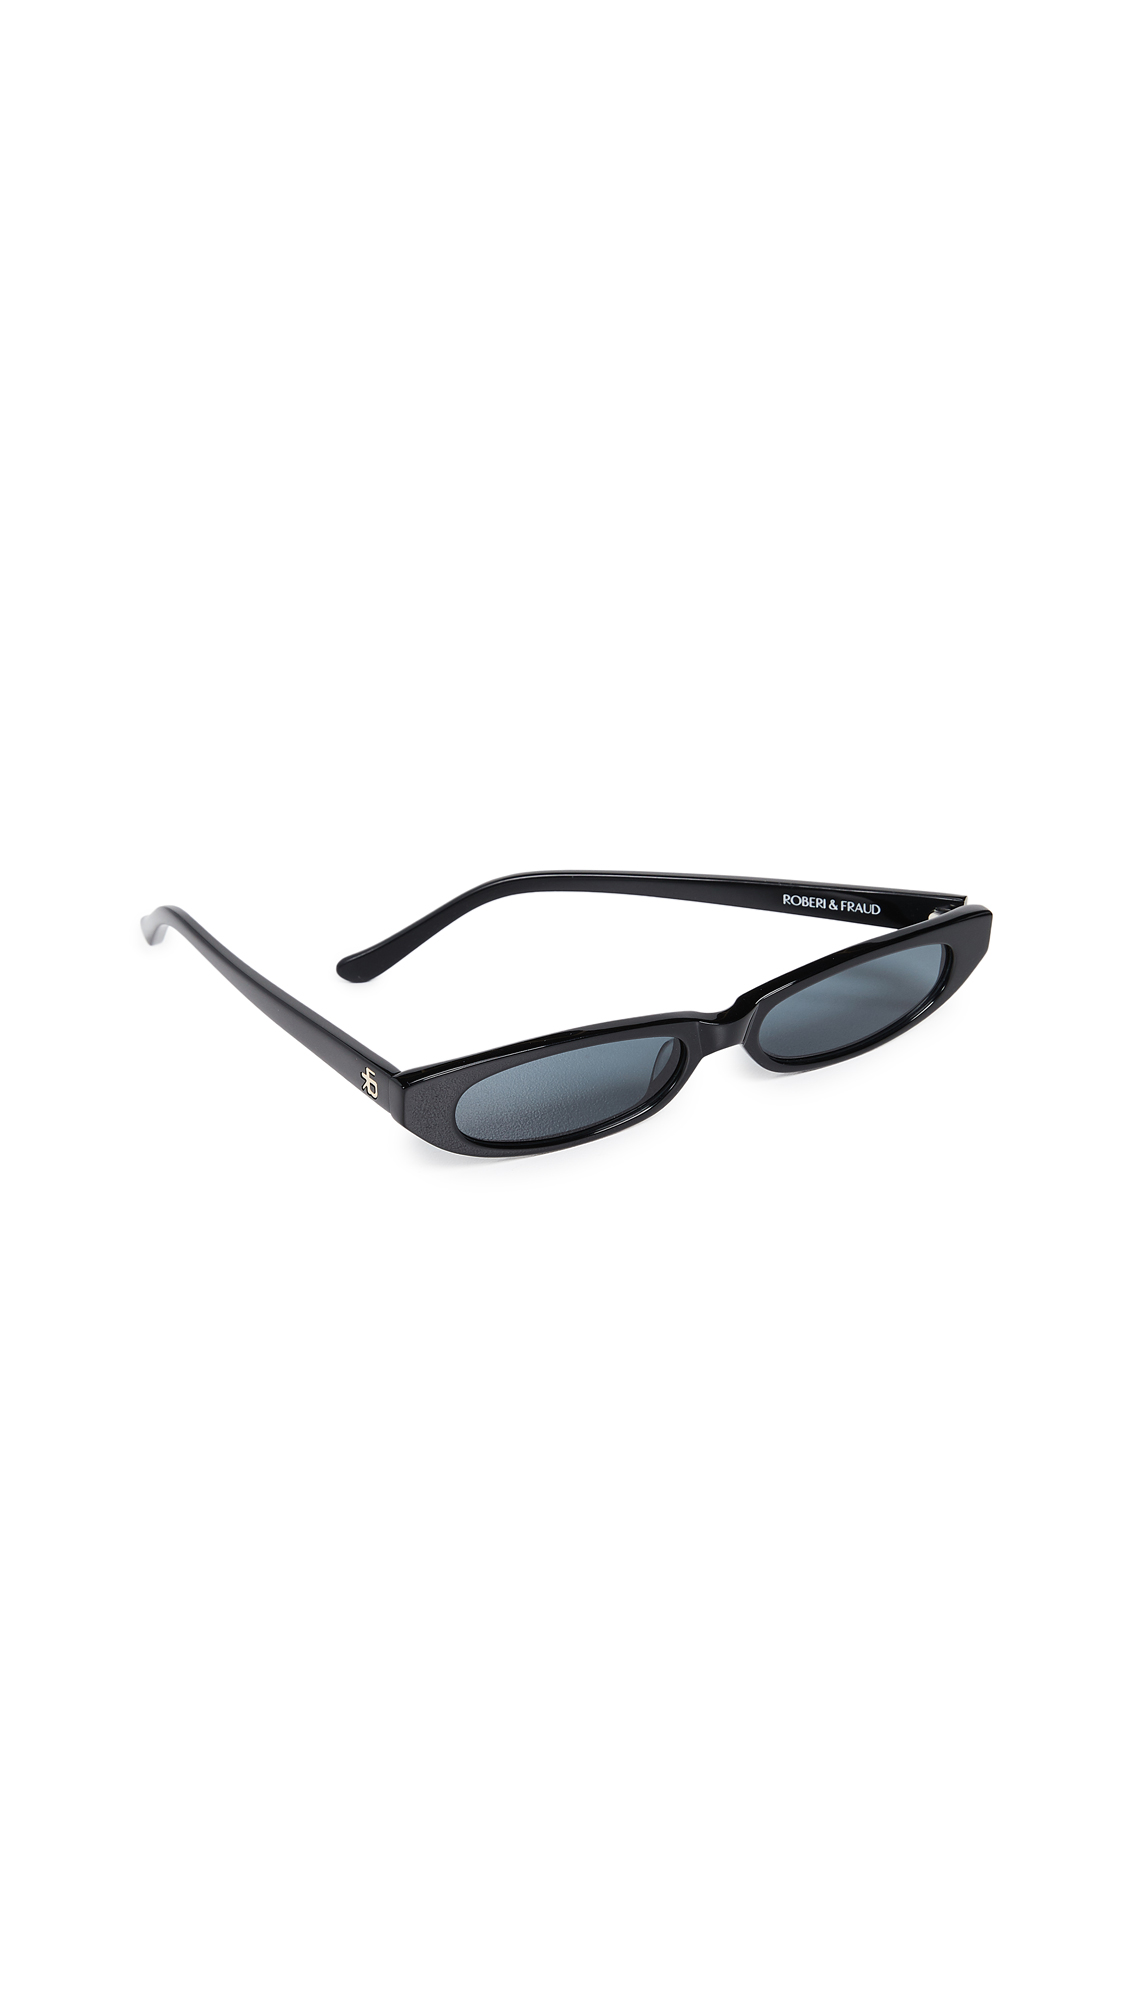 ROBERI & FRAUD Frances Sunglasses in Black